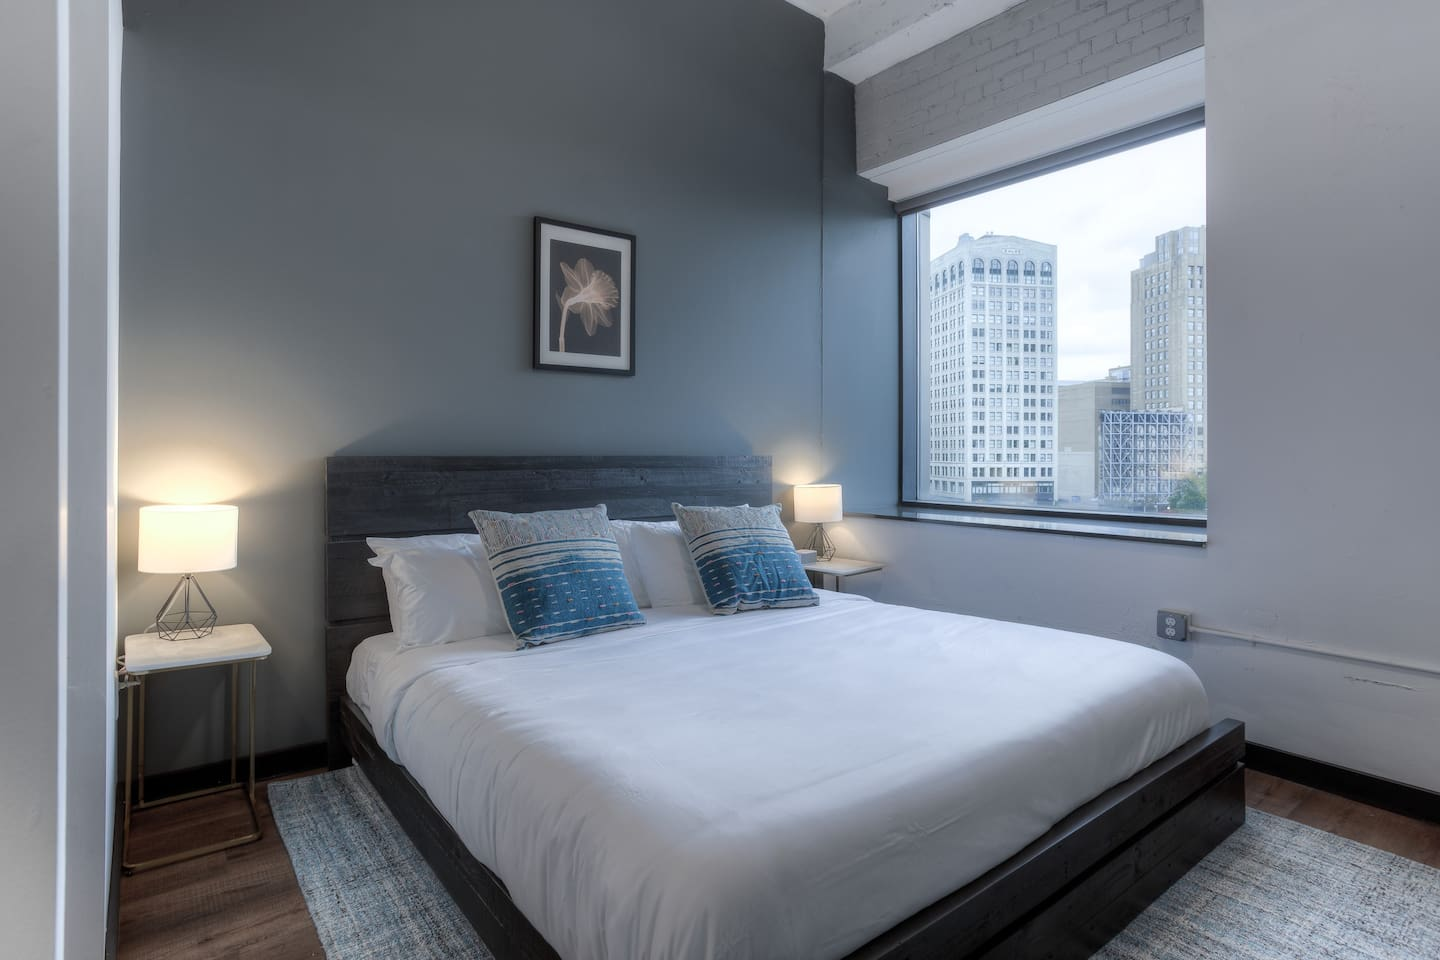 The master bedroom features a king bed with downtown city views